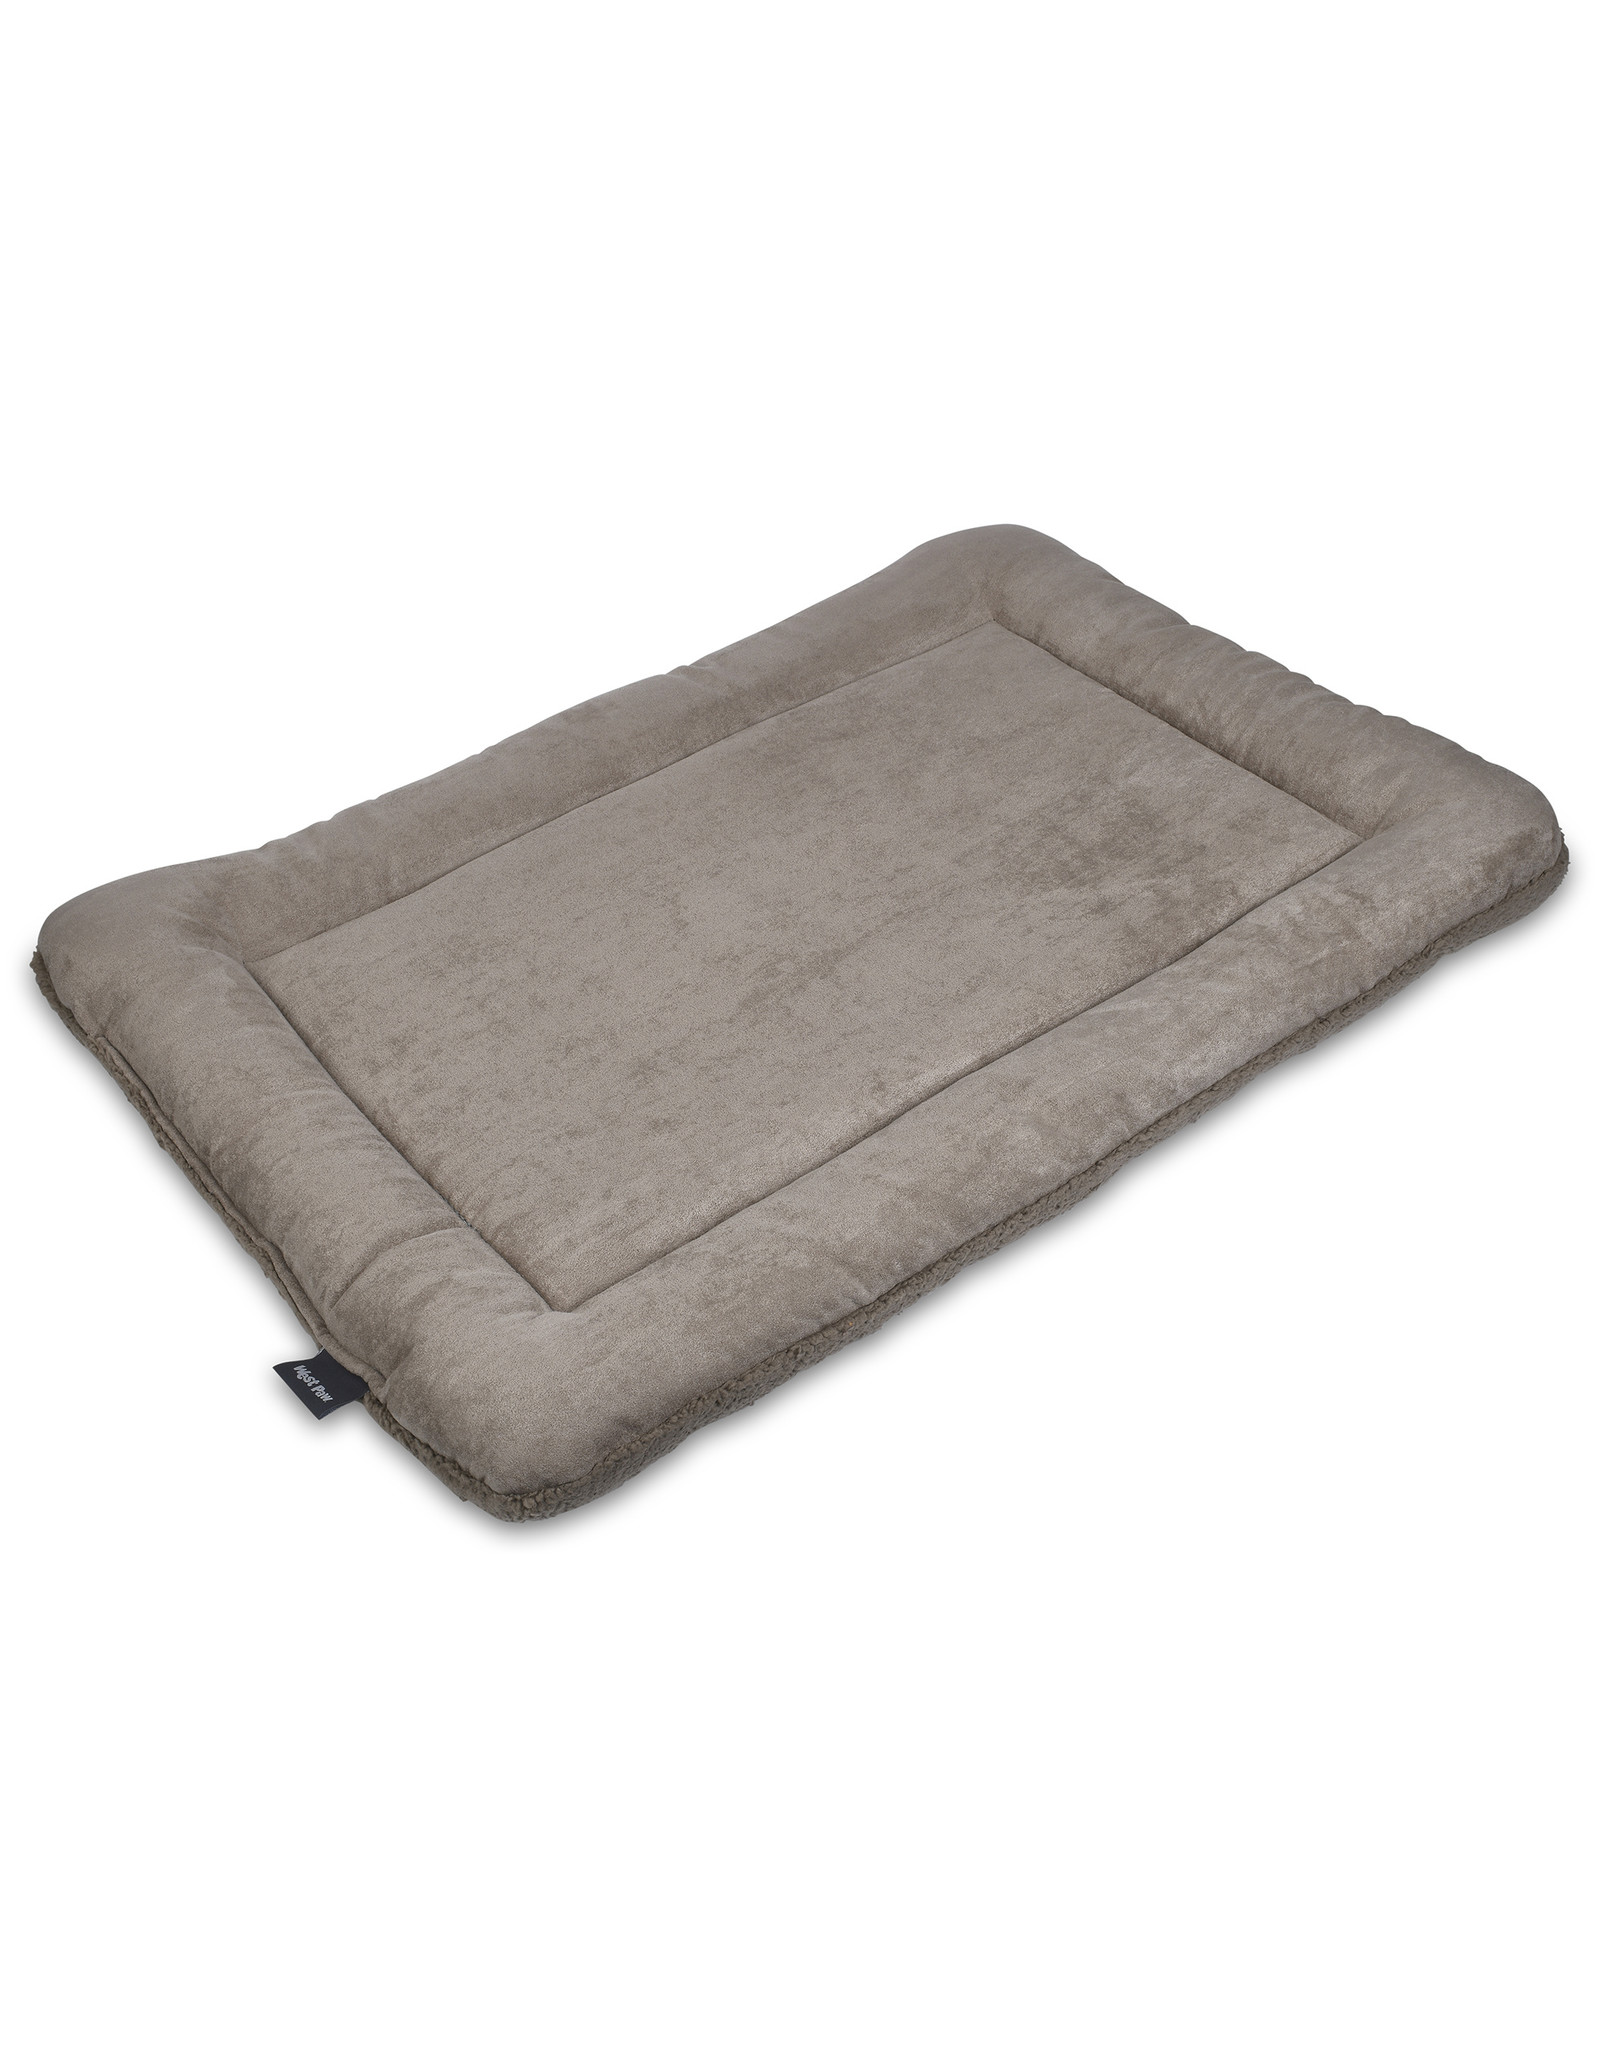 West Paw Designs Westpaw: Big Sky Nap Large Oatmeal